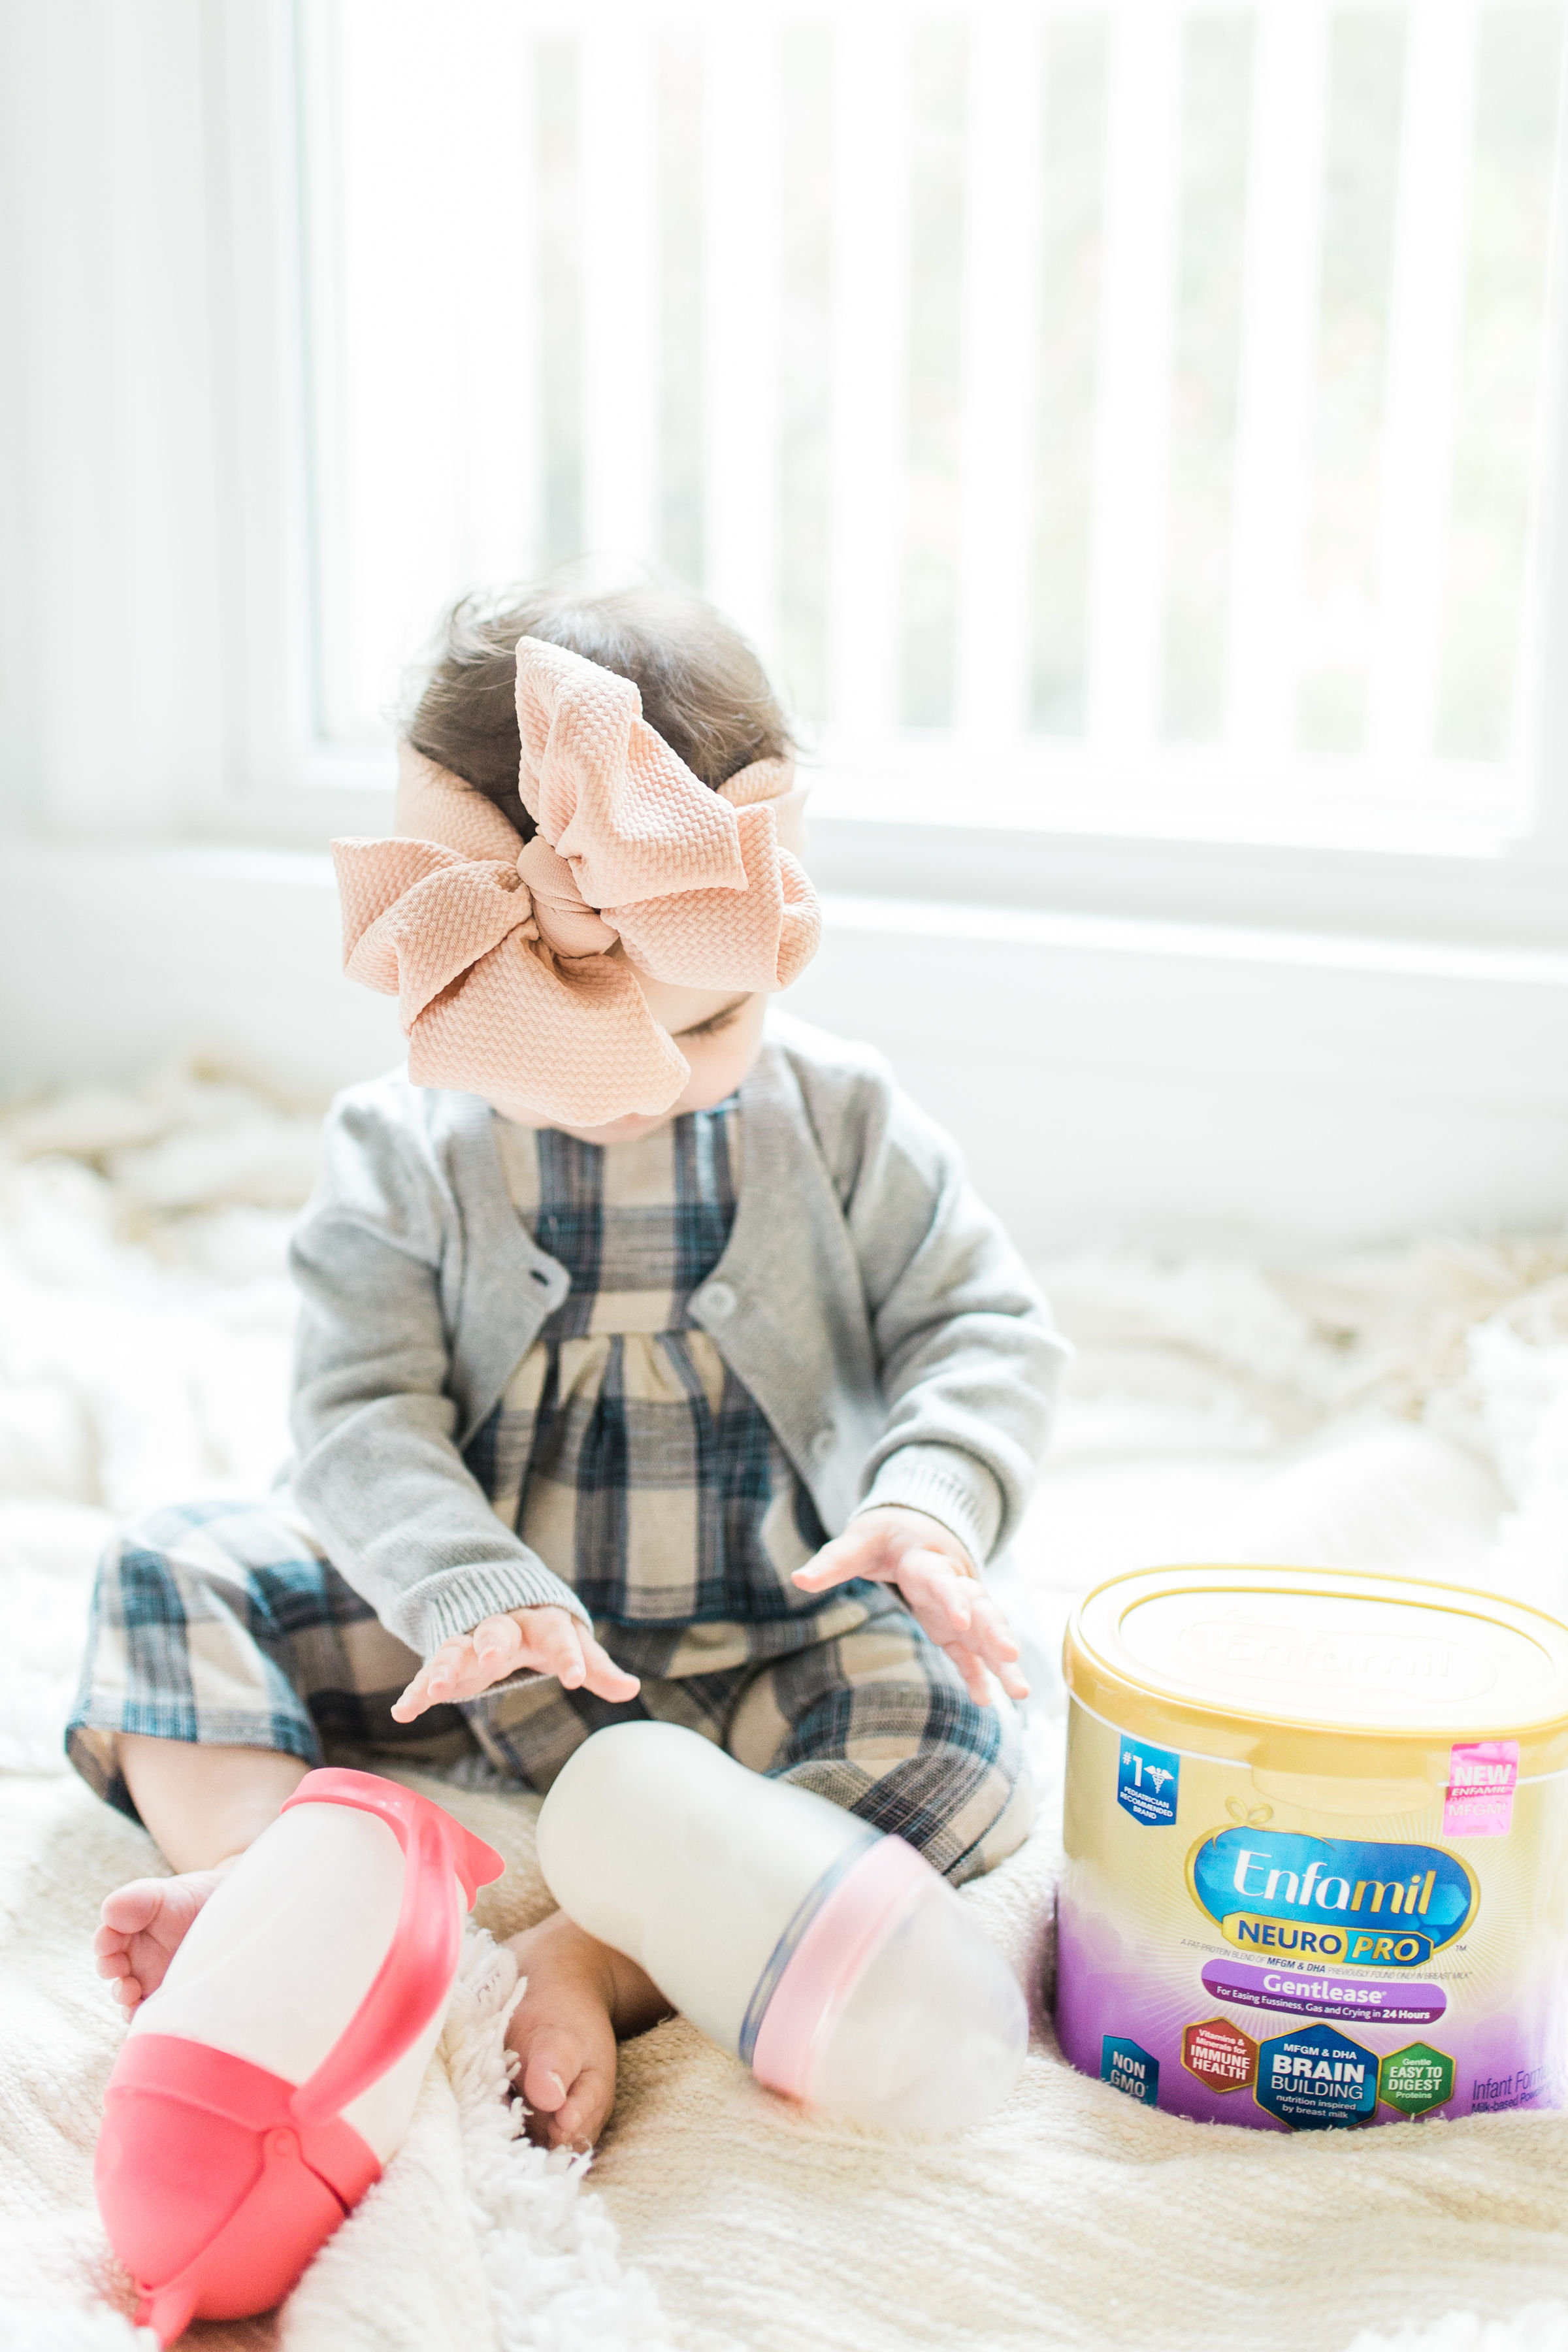 We've long-trusted Enfamil NeuroPro™ formula for our baby.